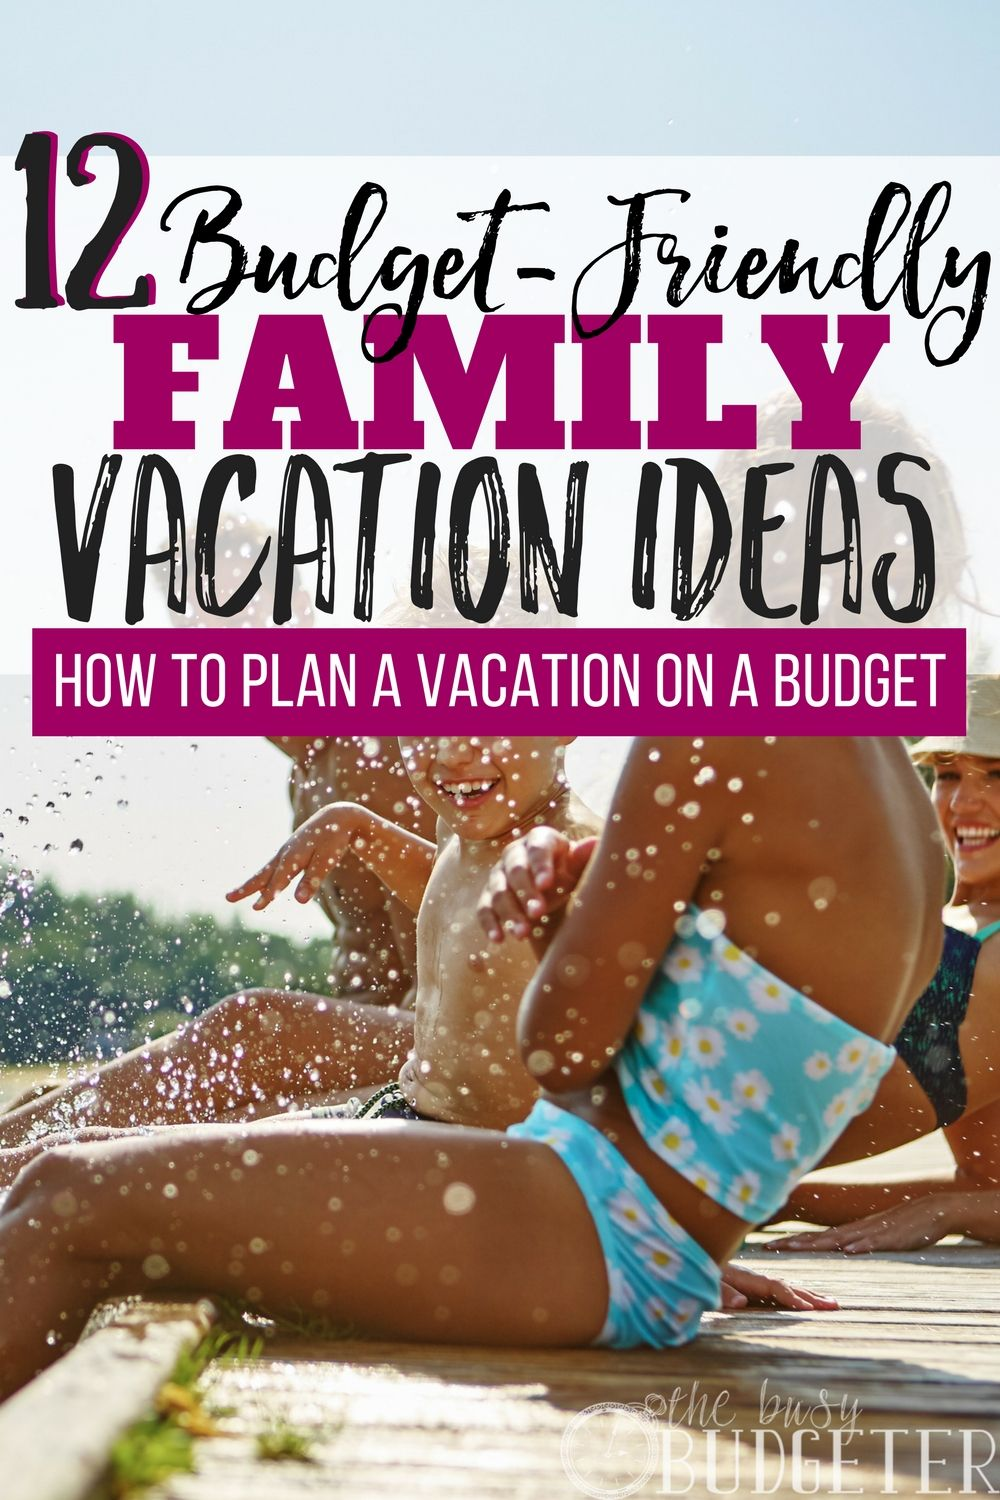 How To Plan A Vacation On A Budget: 12 Vacation Ideas